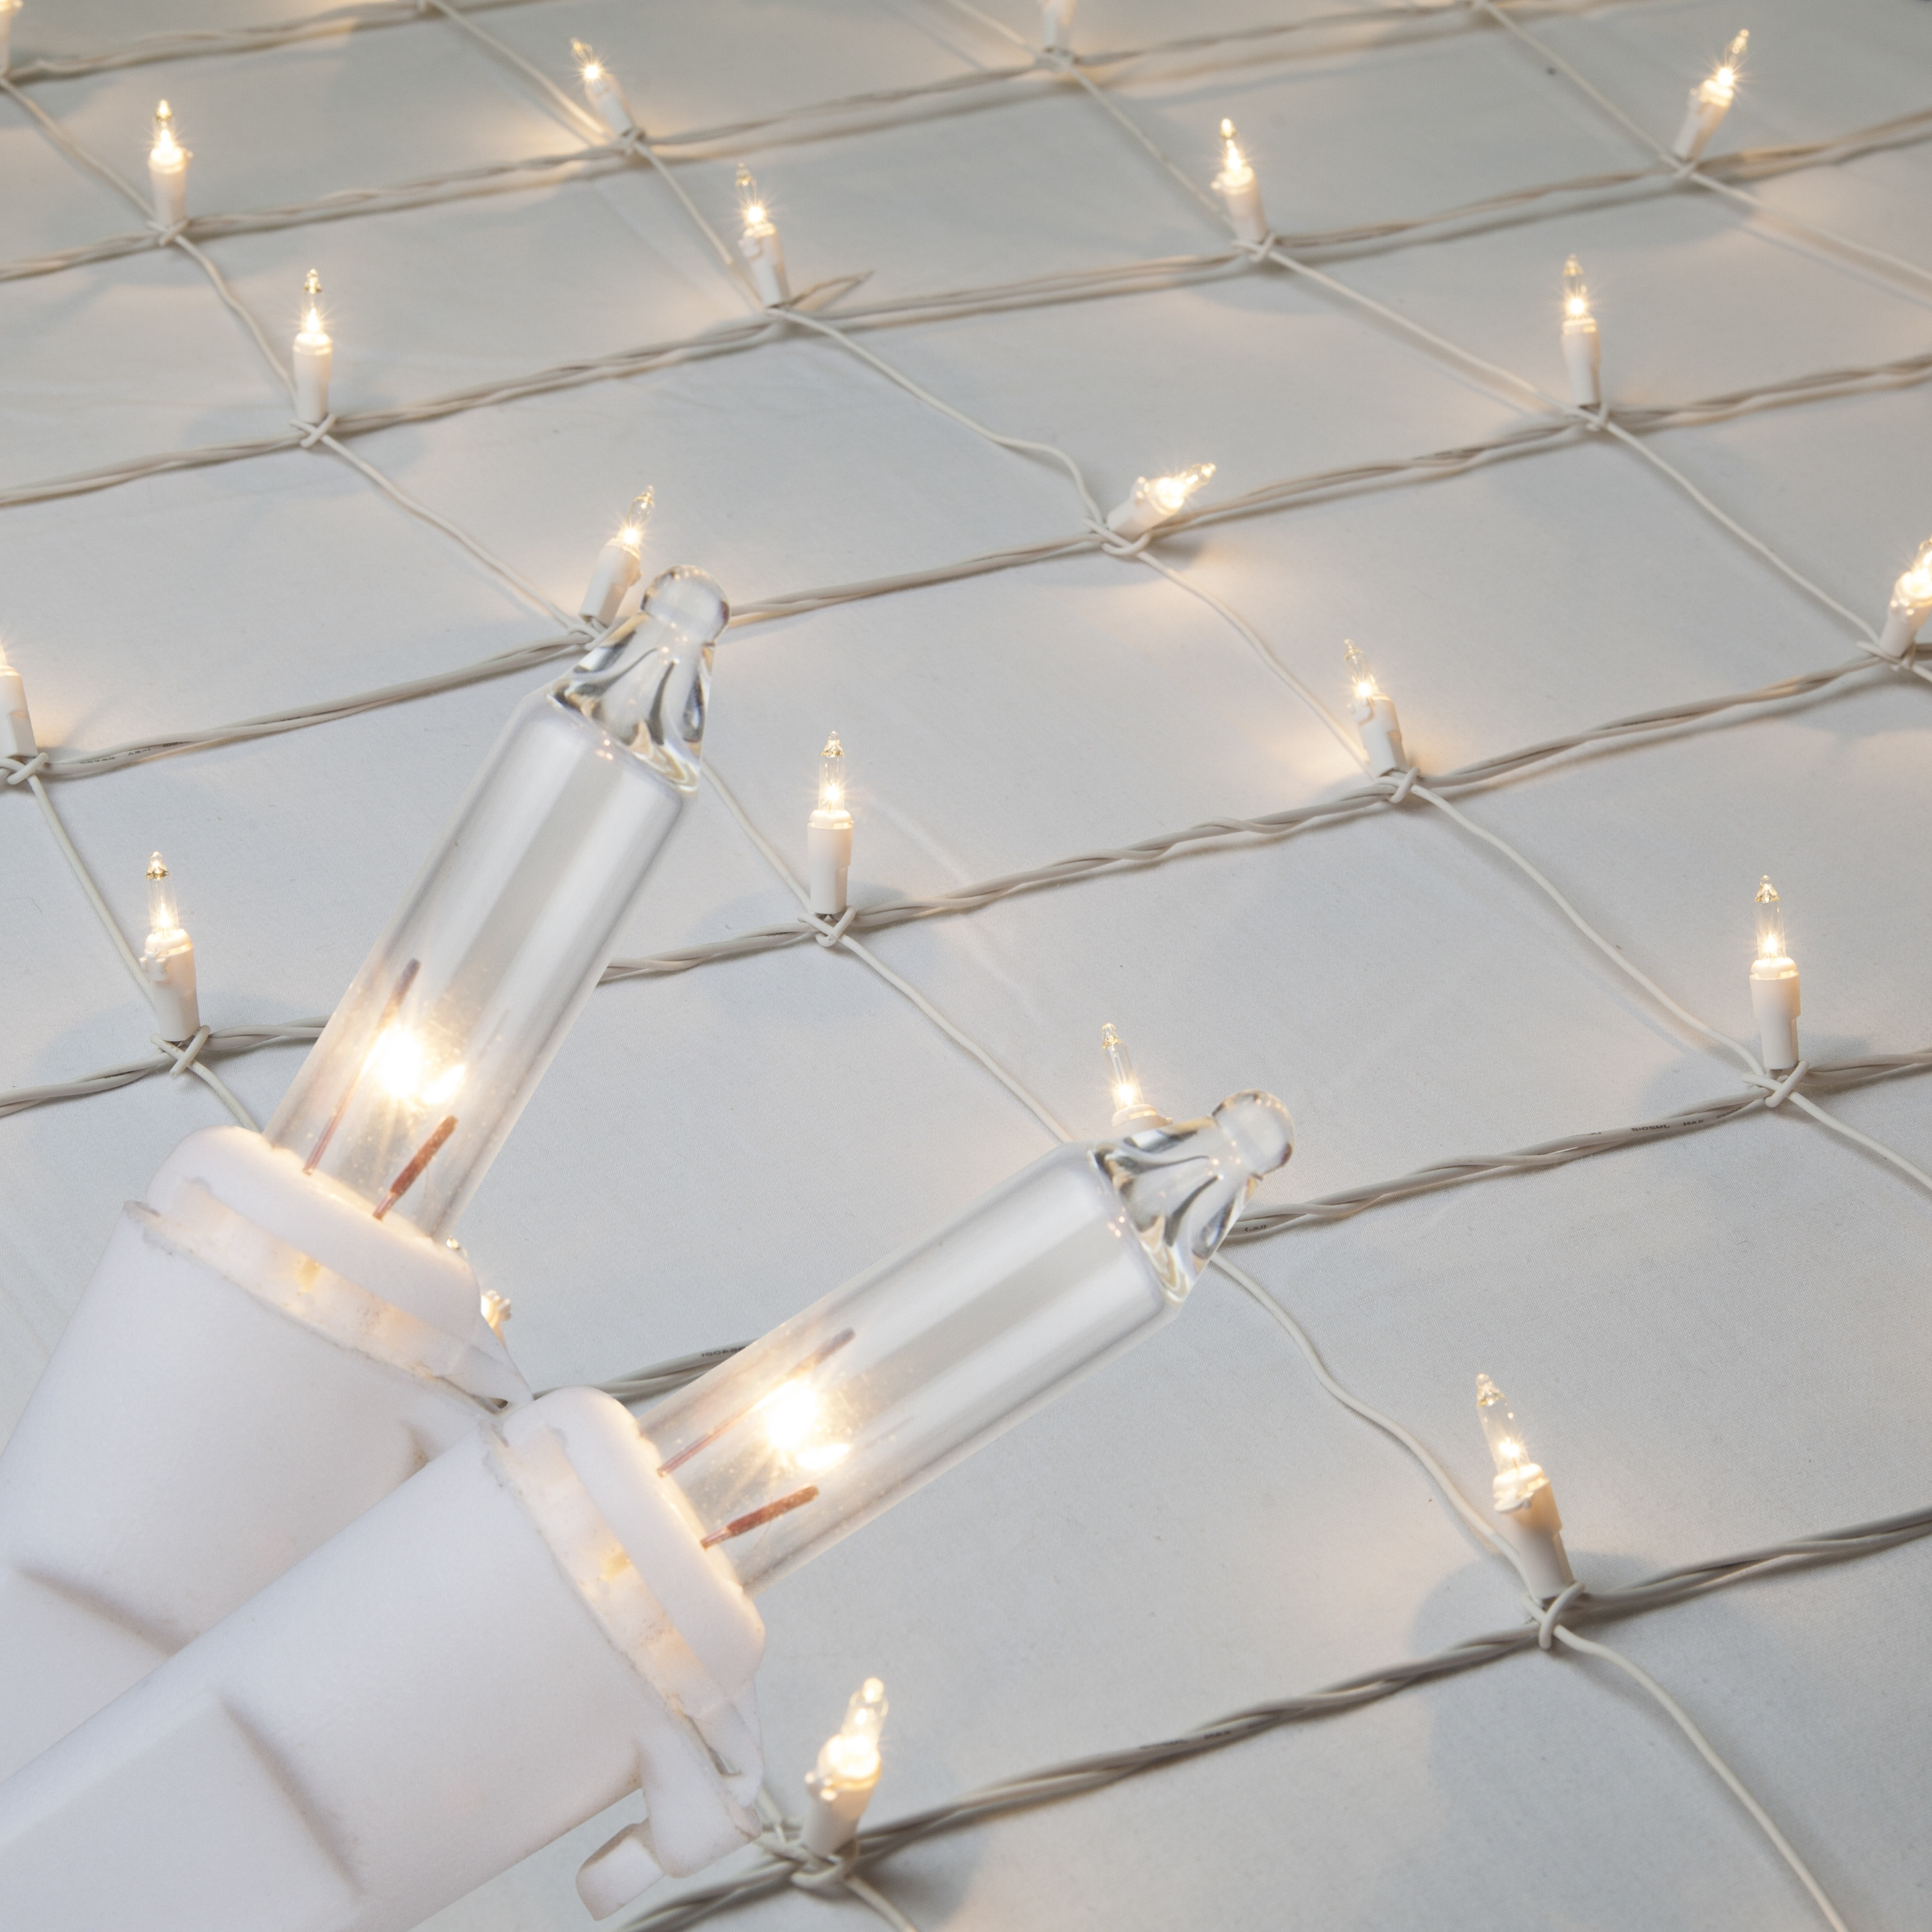 Christmas Net Lights - 4\' x 6\' Net Lights - 150 Clear Lamps ...